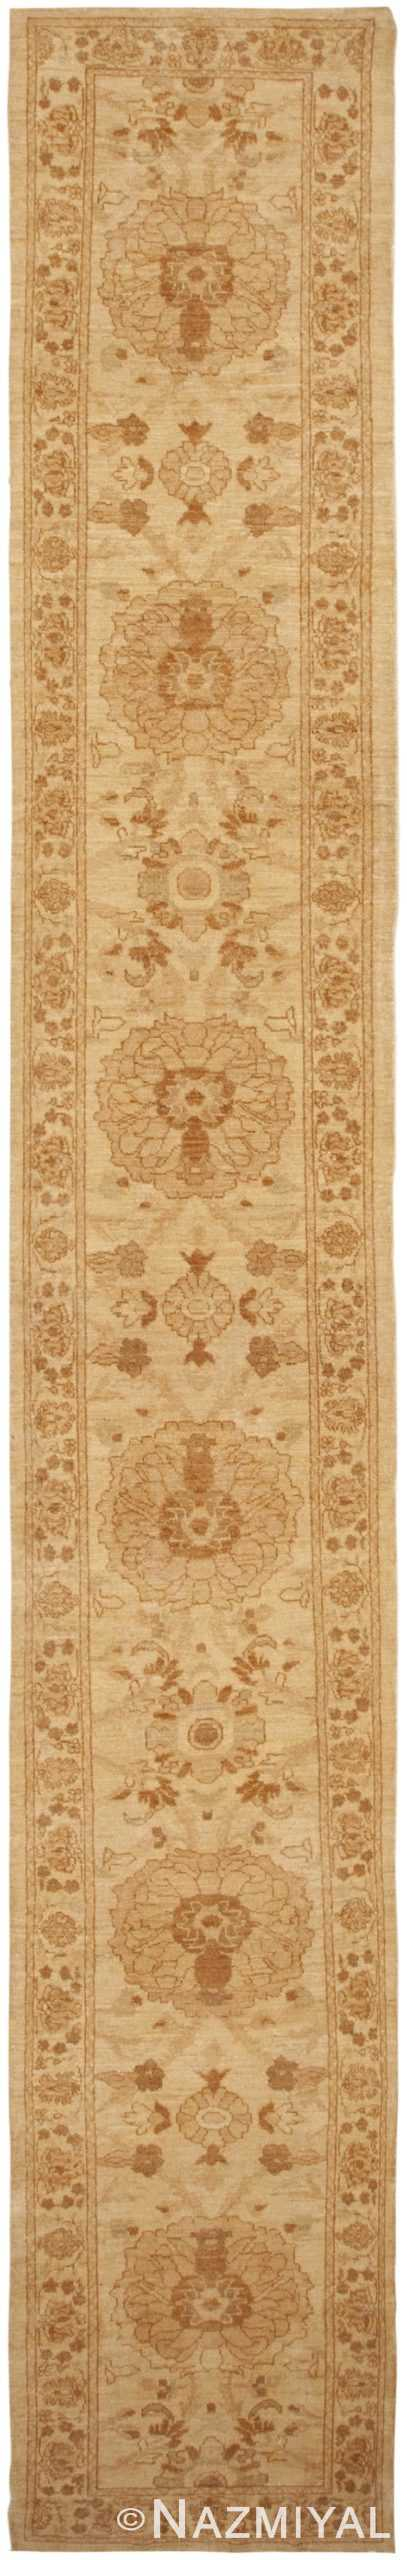 Vintage Persian Sultanabad Rug 46550 Detail/Large View